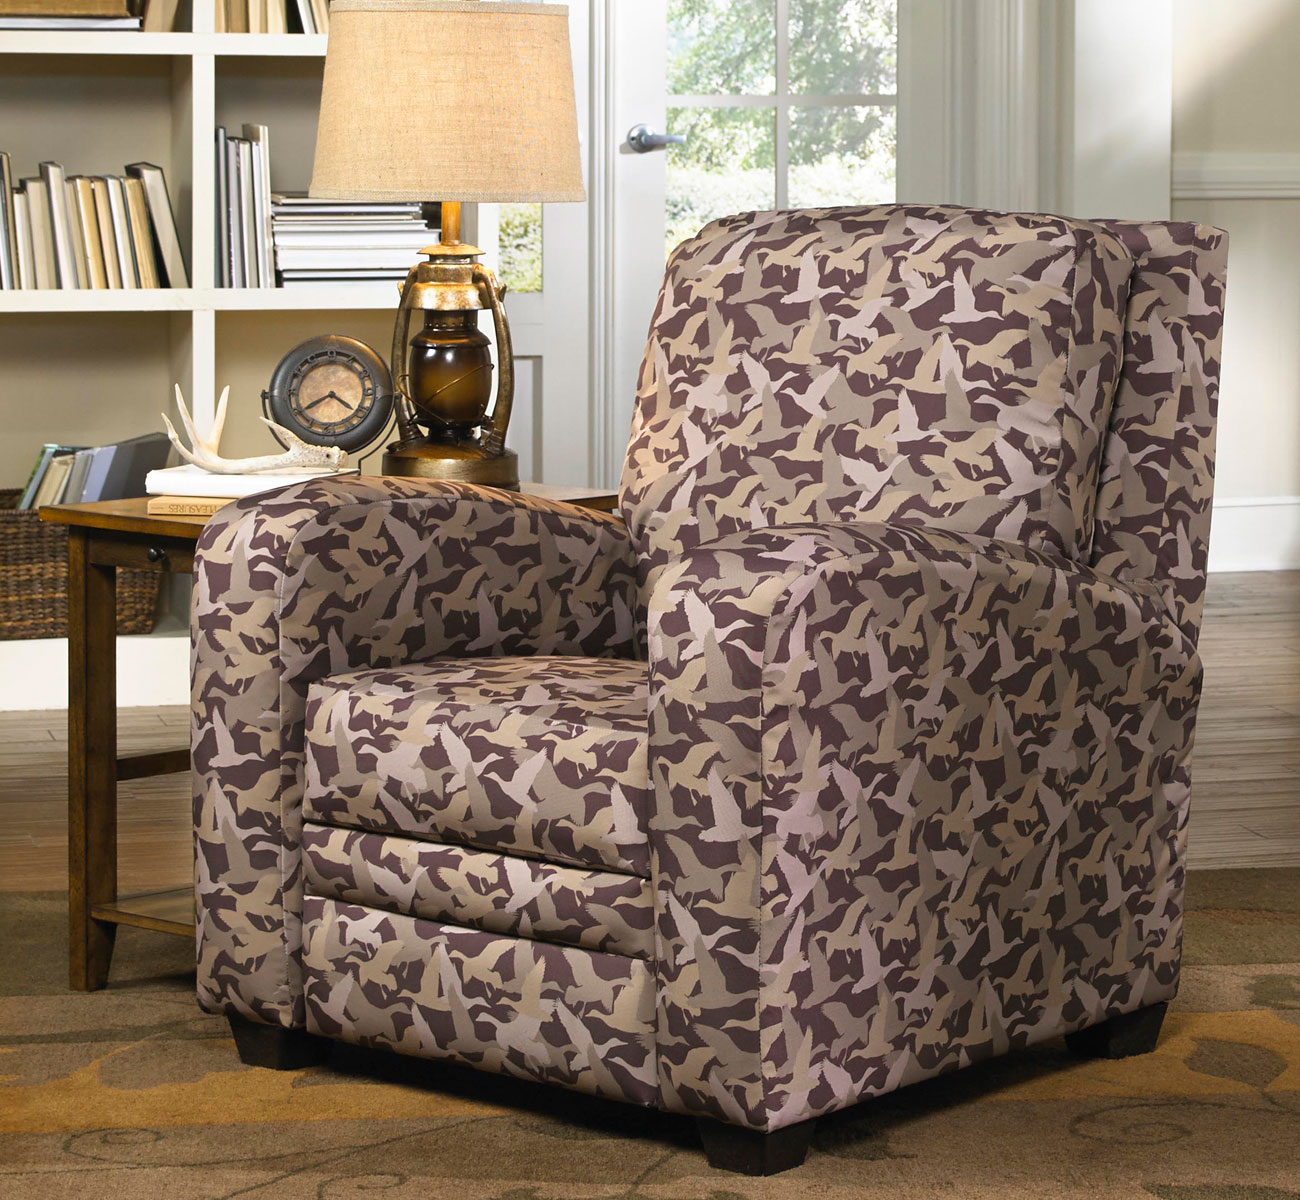 Sofa Relax At Home After A Long Day With Cozy Duck Dynasty Recliner regarding Camouflage Living Room Sets